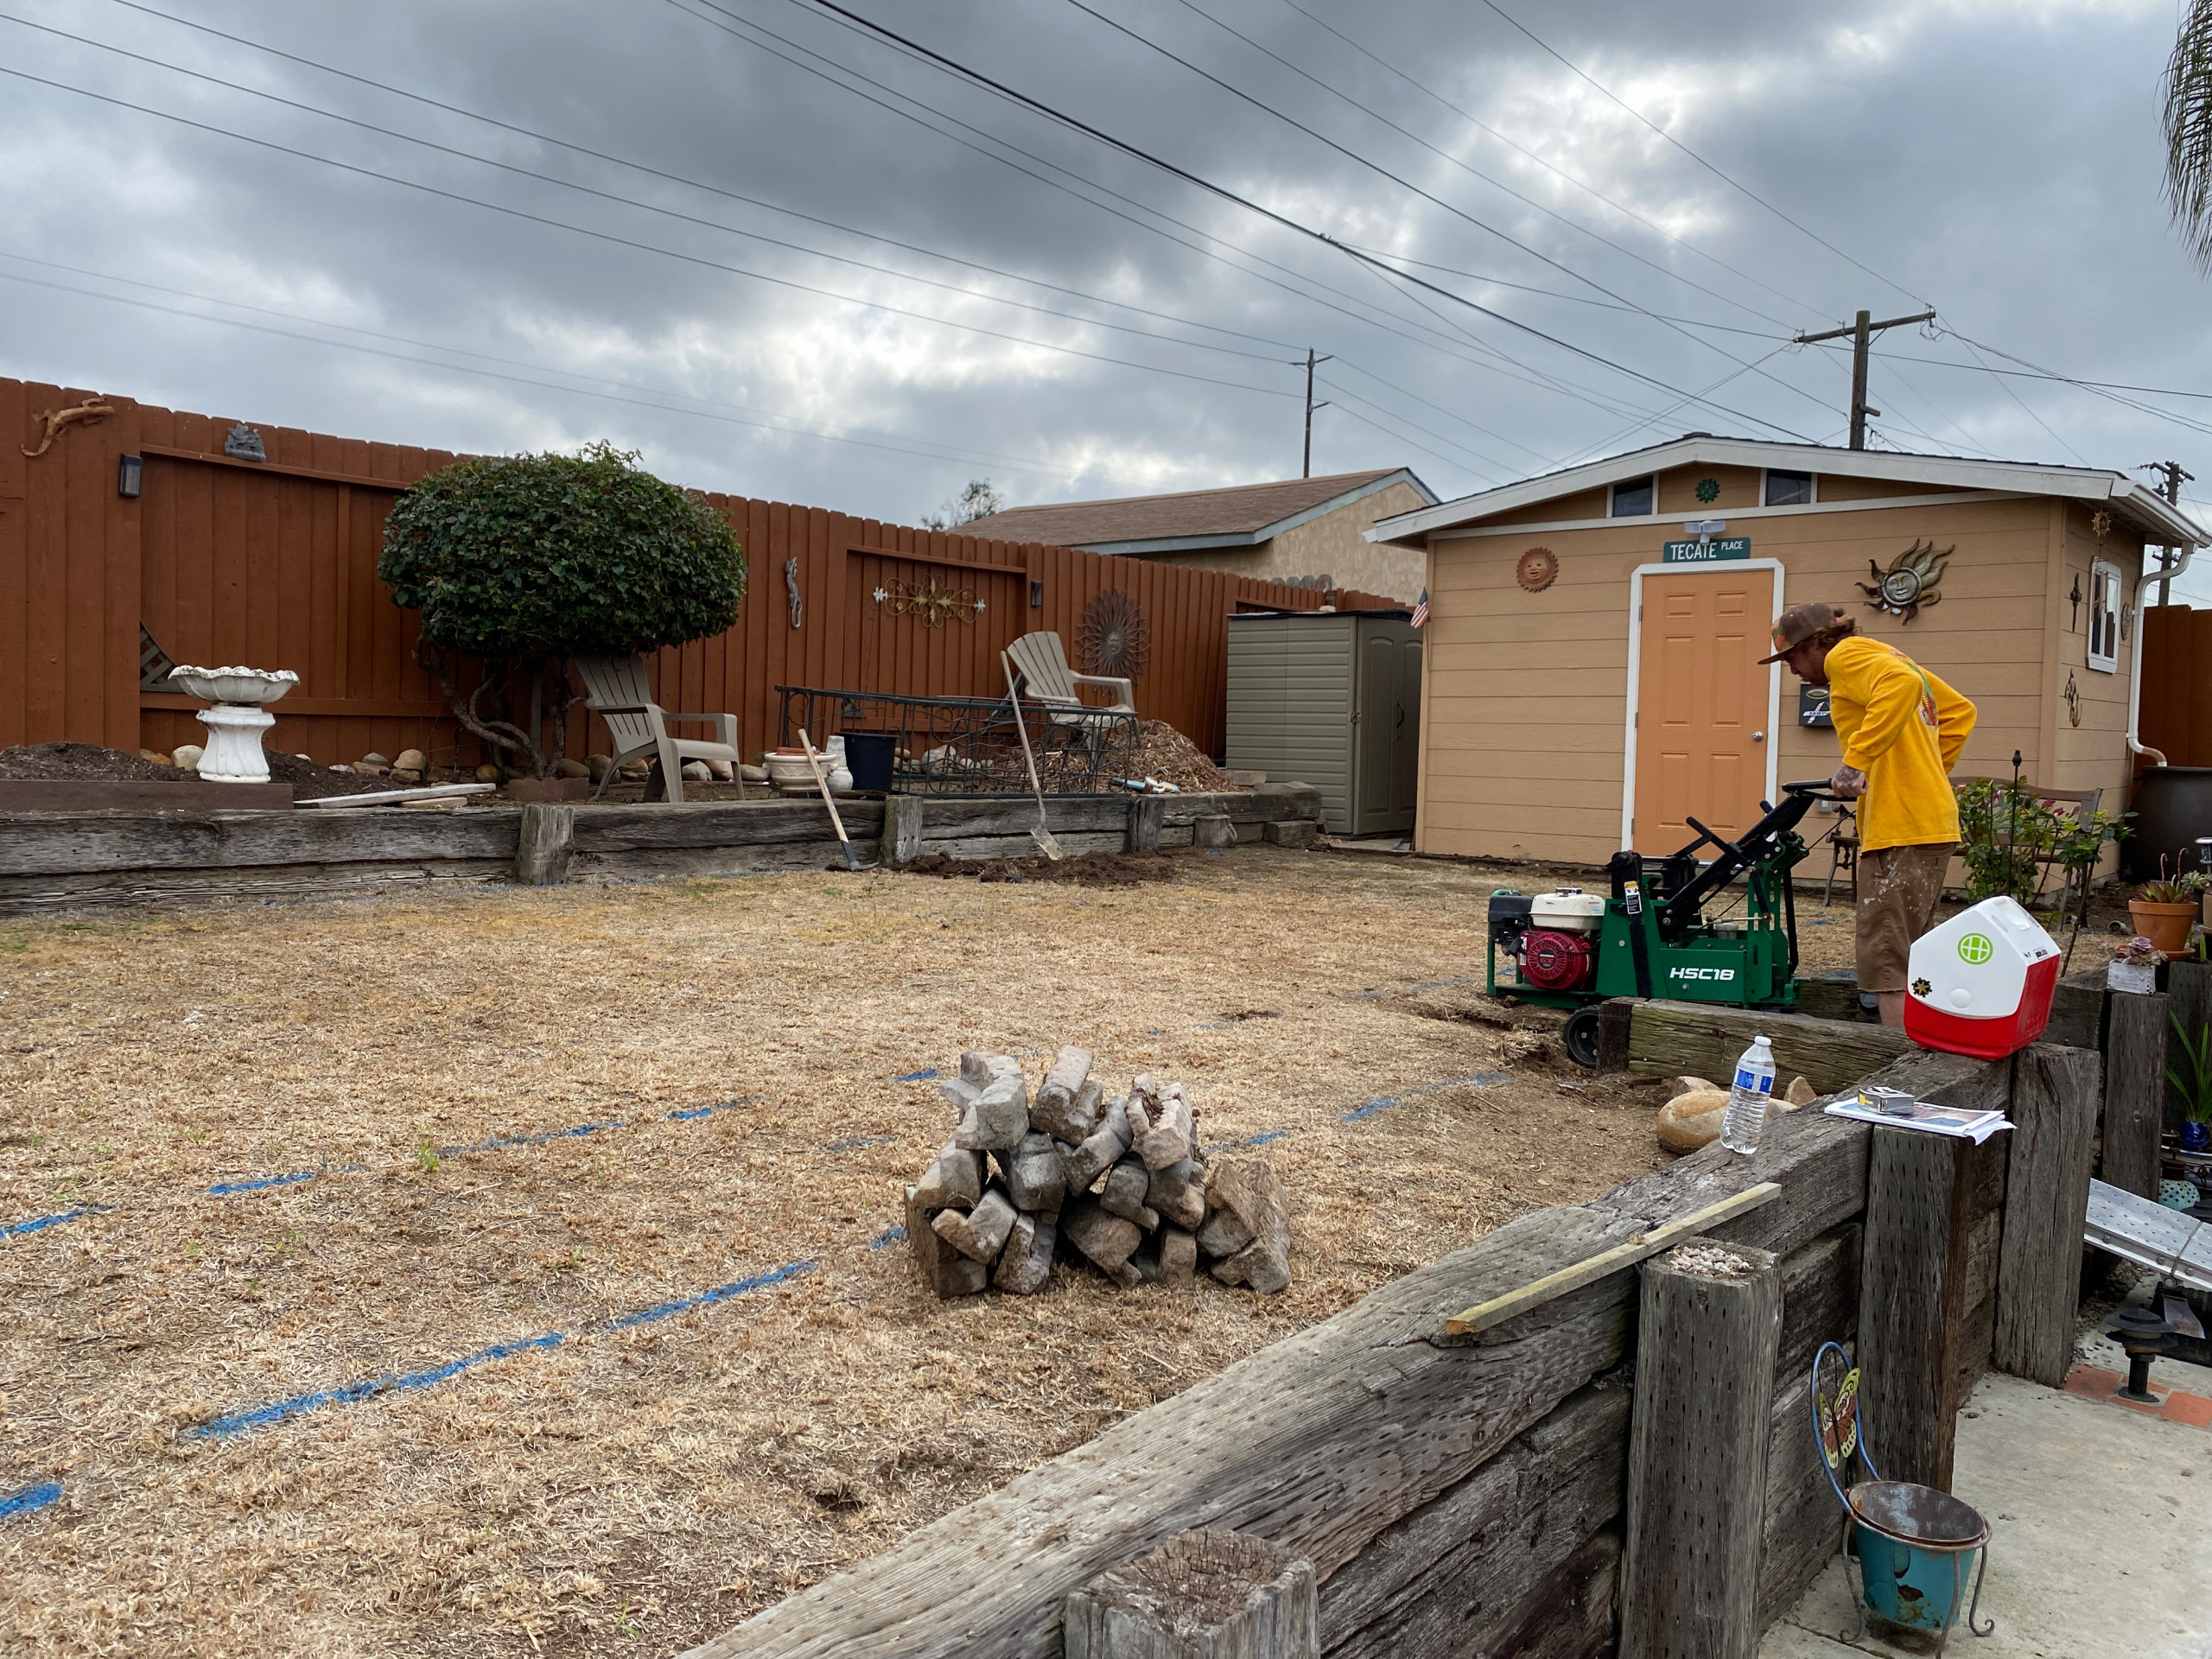 Backyard Update - Clairemont